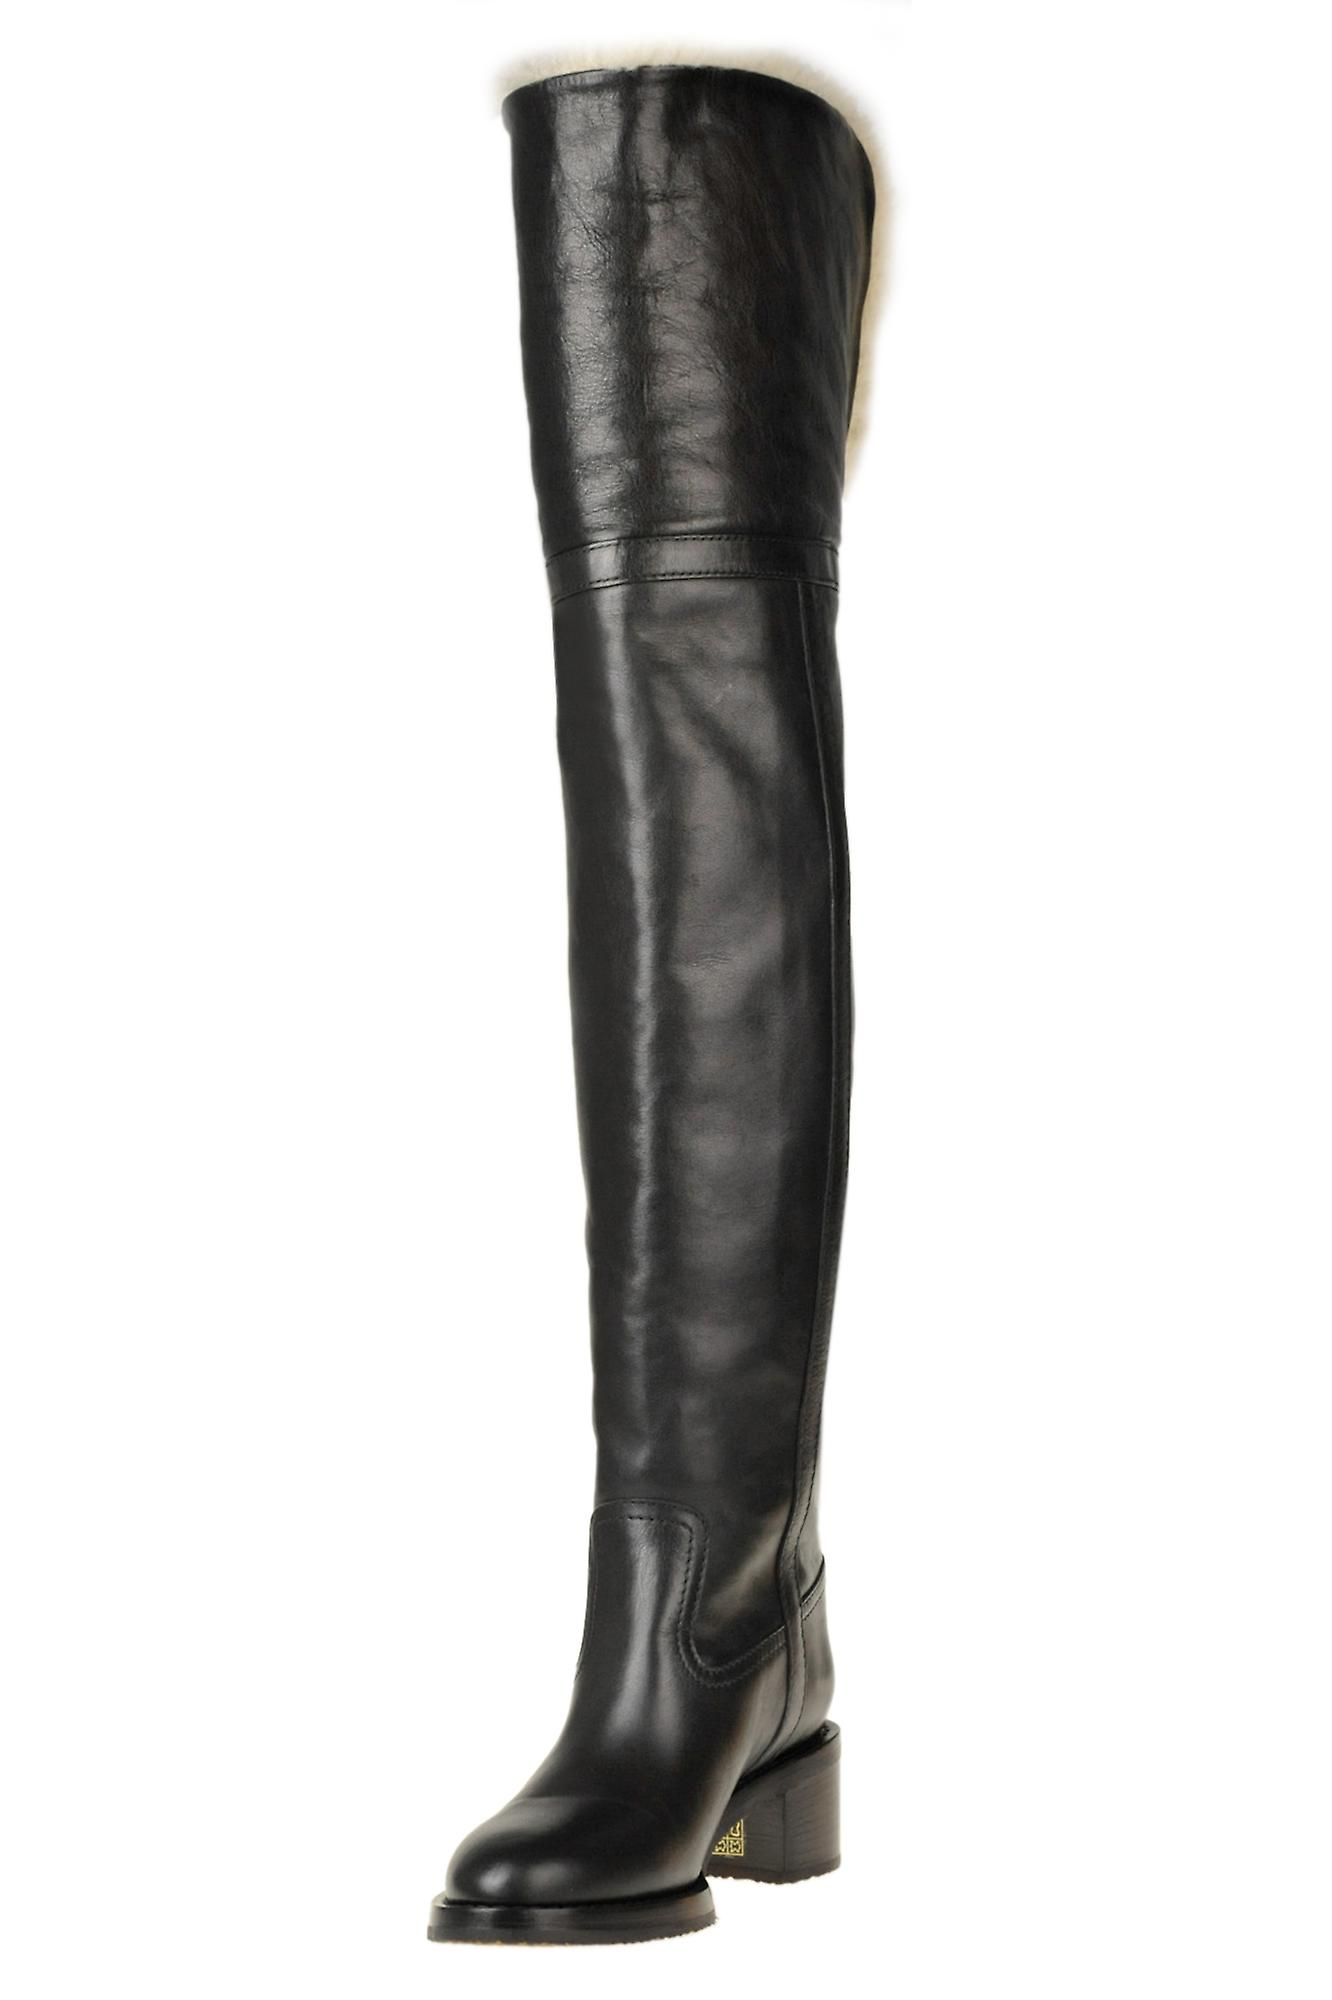 Céline Ezgl076054 Women's Black Leather Boots